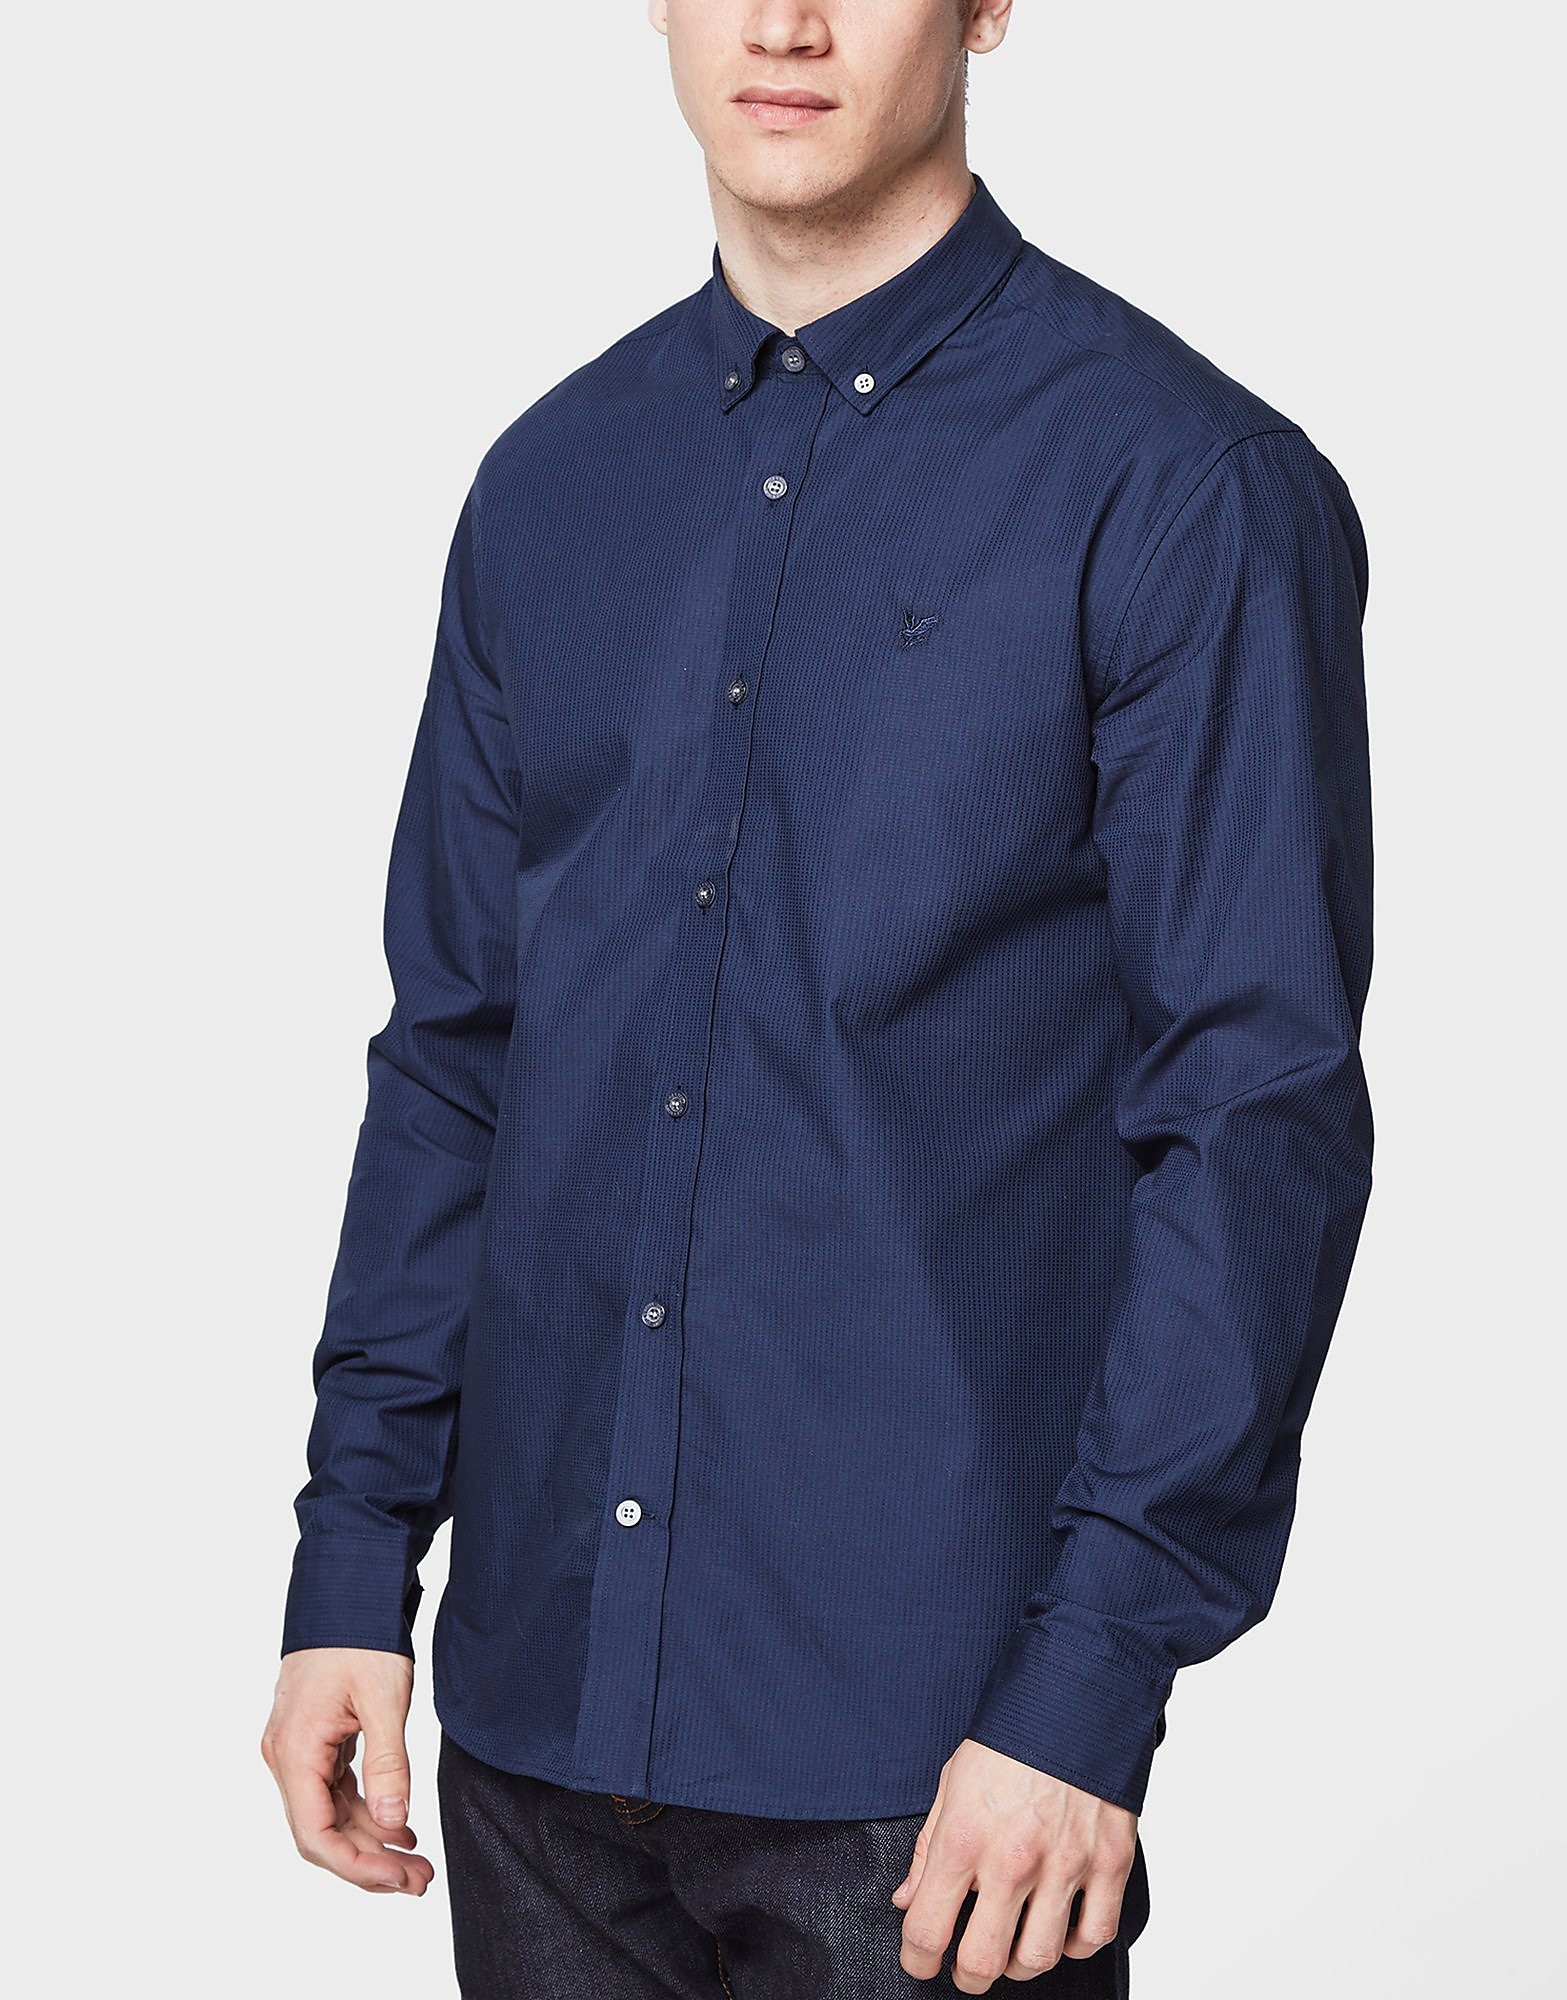 Lyle & Scott Long Sleeve Pindot Textured Shirt